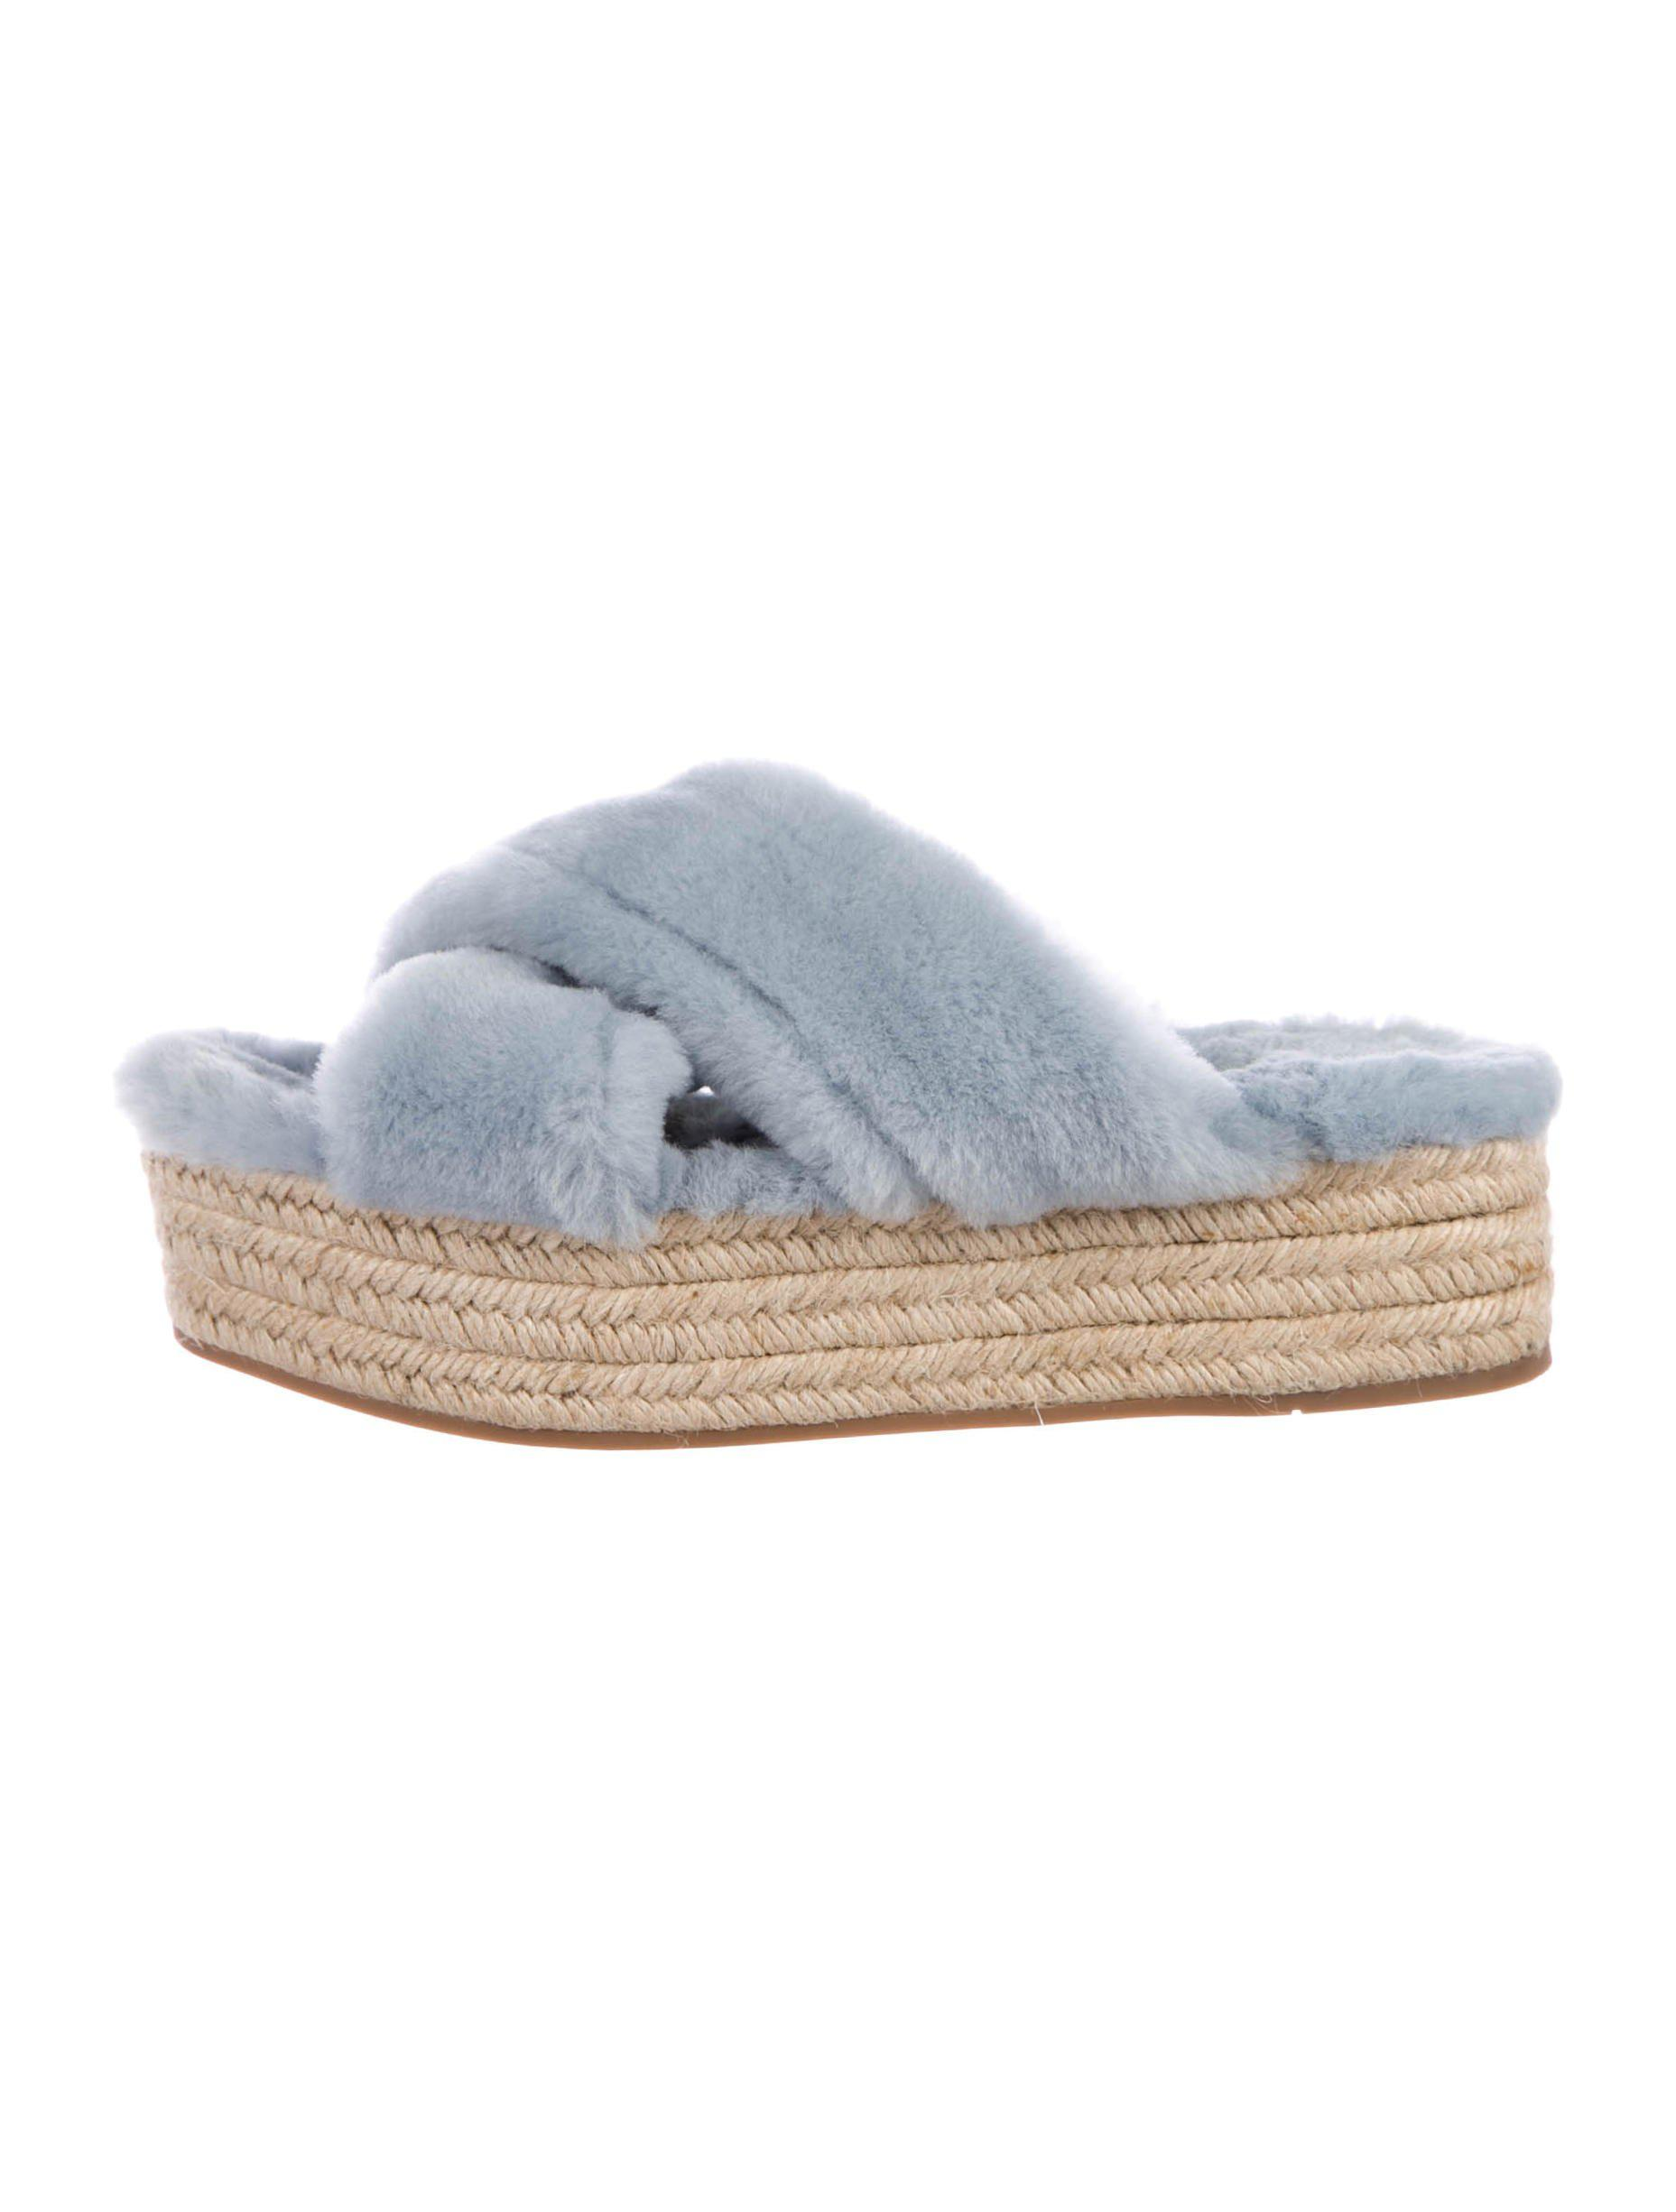 Miu Miu 2017 Shearling Espadrille Sandals authentic sale online buy cheap low price discount for sale footlocker great deals cheap online 3N2RgH44